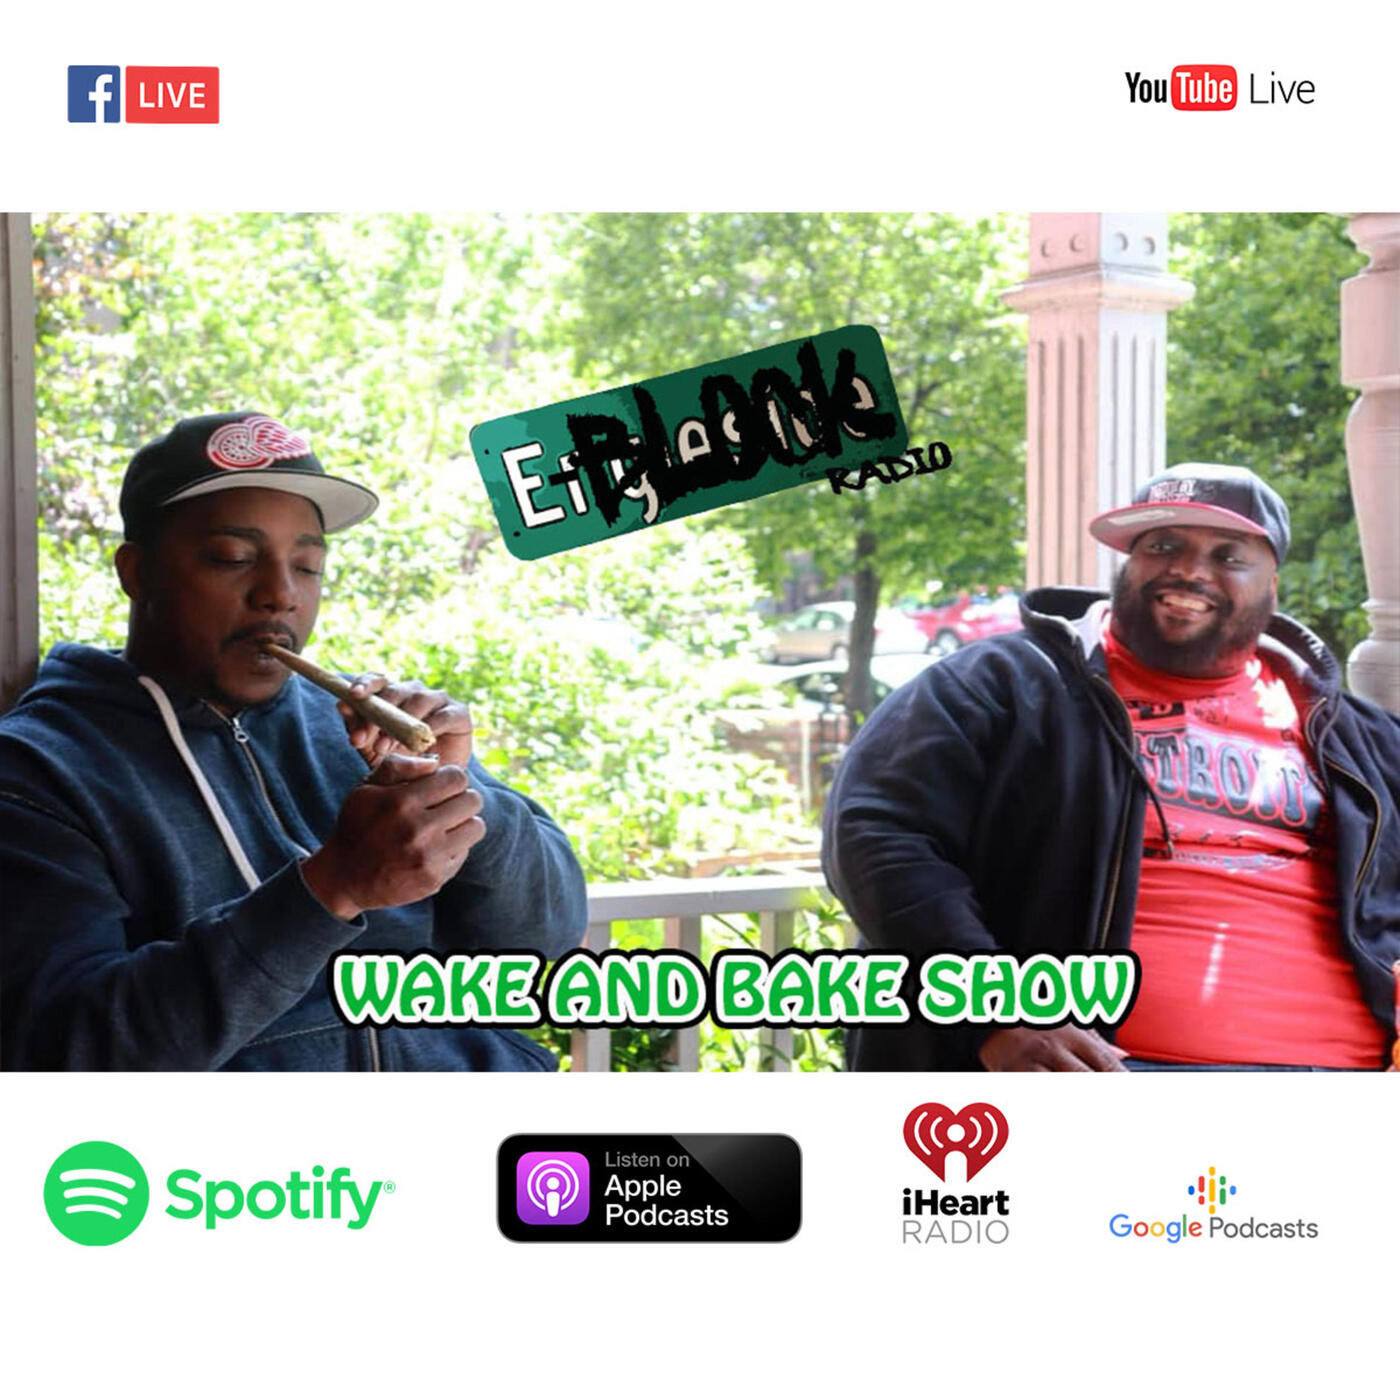 E-Block Radio Wake and Bake Show